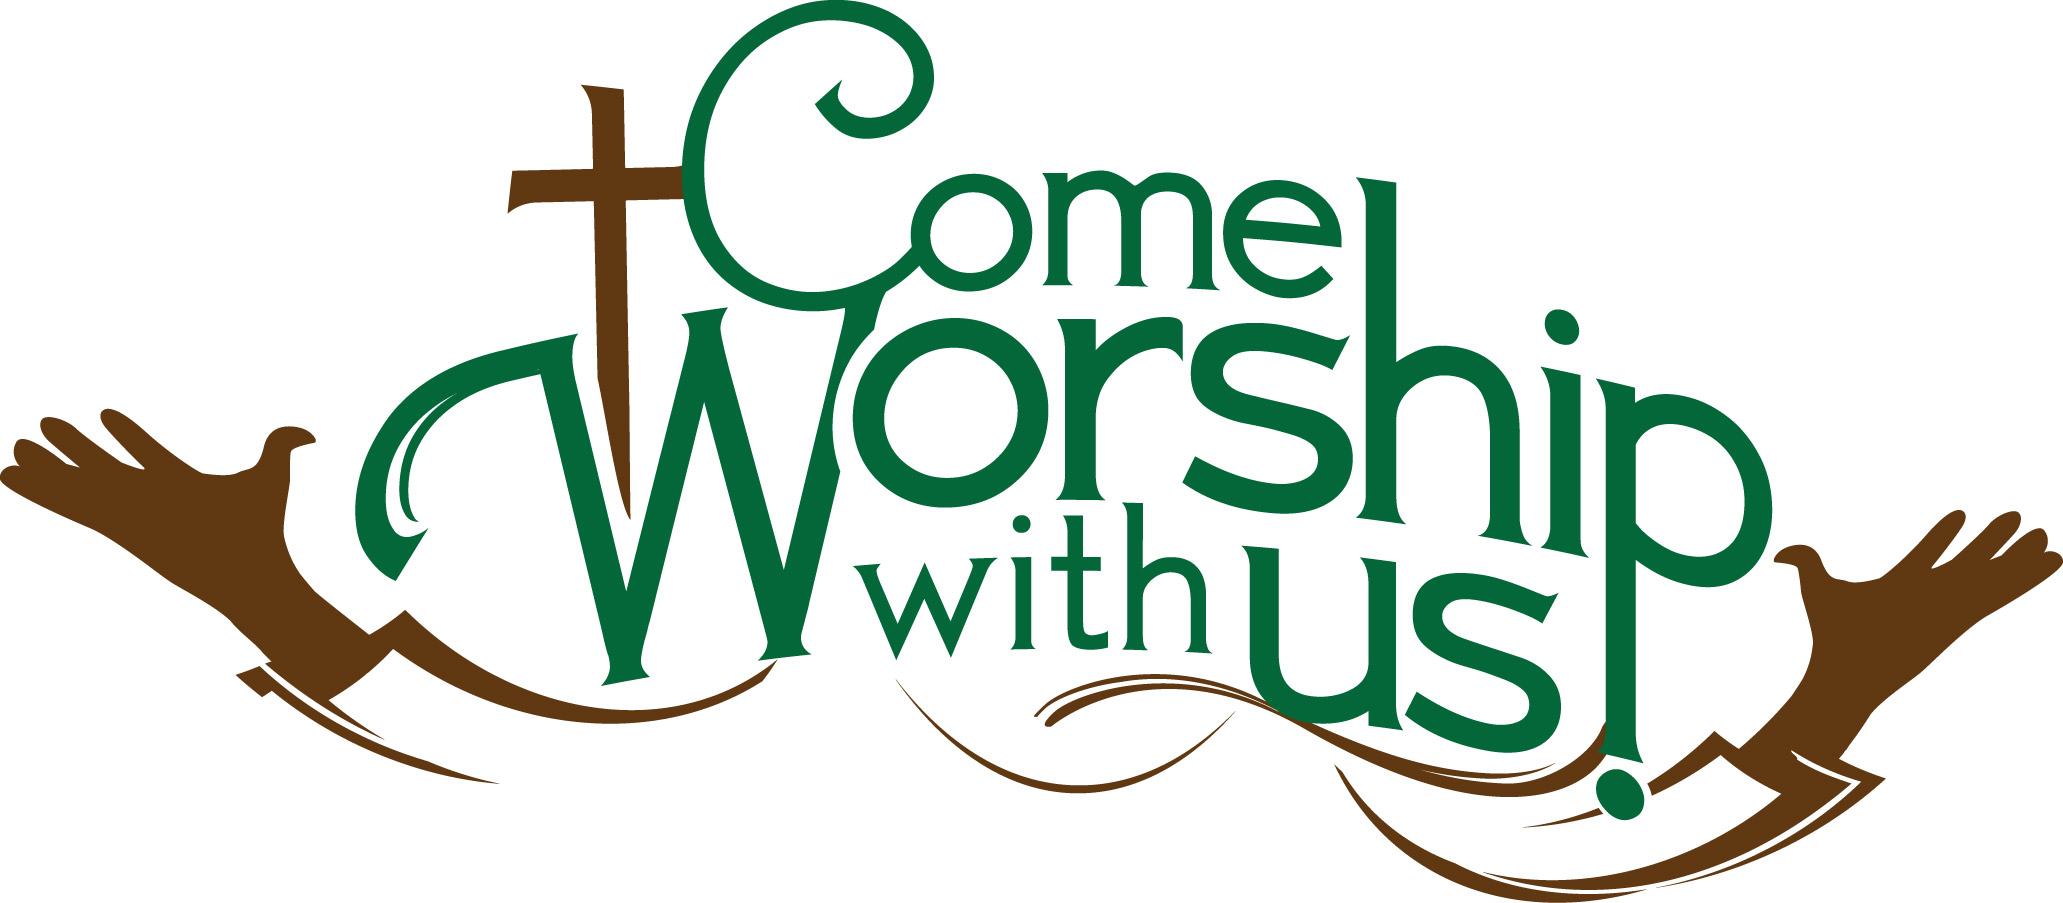 Free Church Activities Cliparts, Download Free Clip Art.